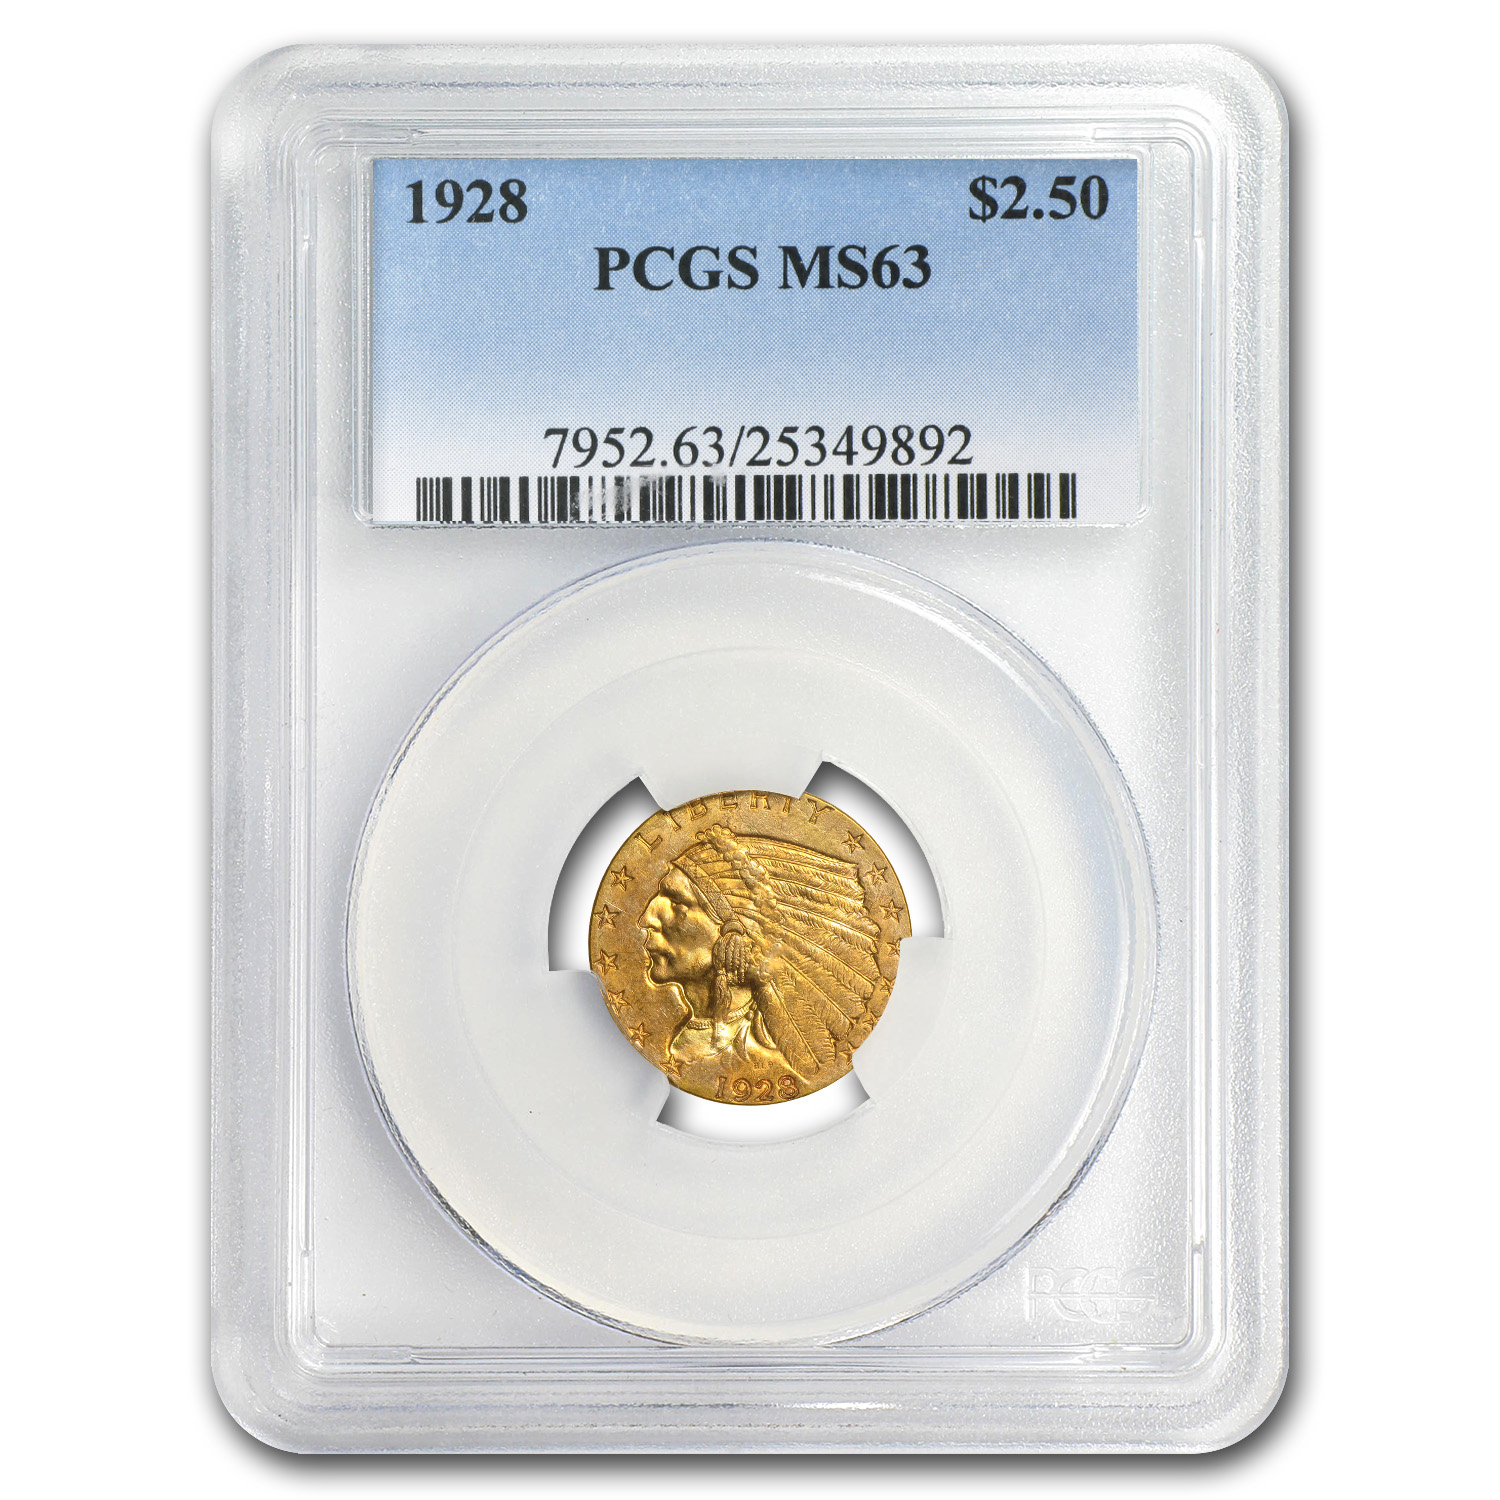 5-Coin $2.50 Indian Gold Quarter Eagle Set MS-63 PCGS (1920s)